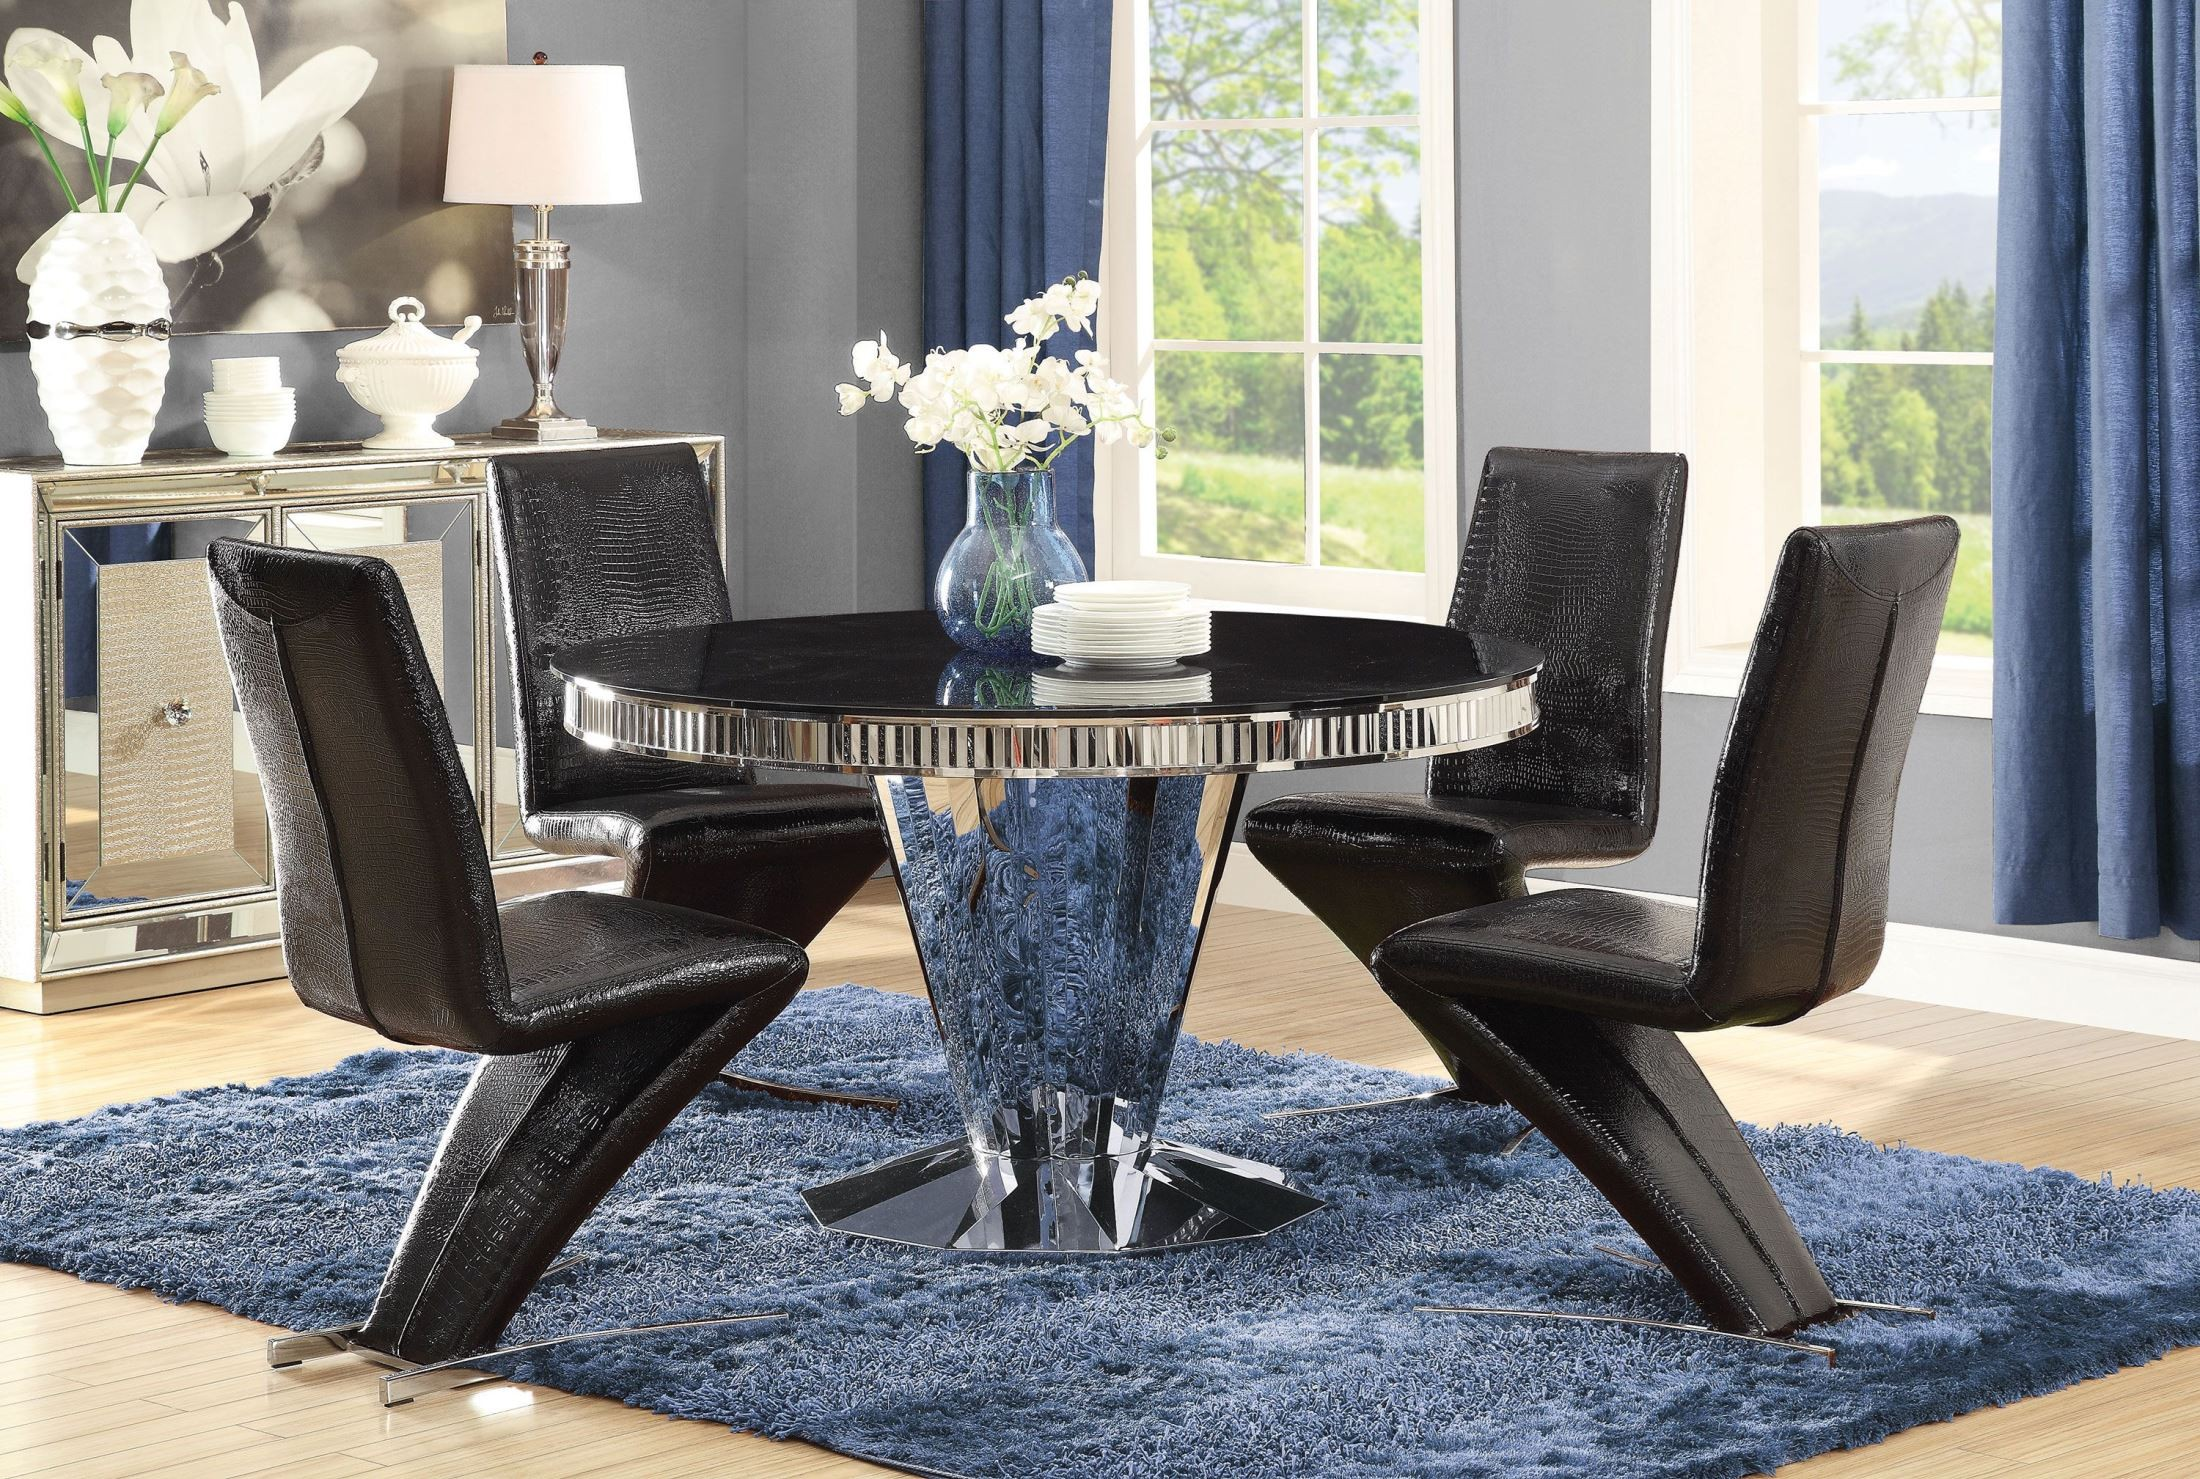 Barzini Stainless Steel Dining Room Set. Coaster Furniture